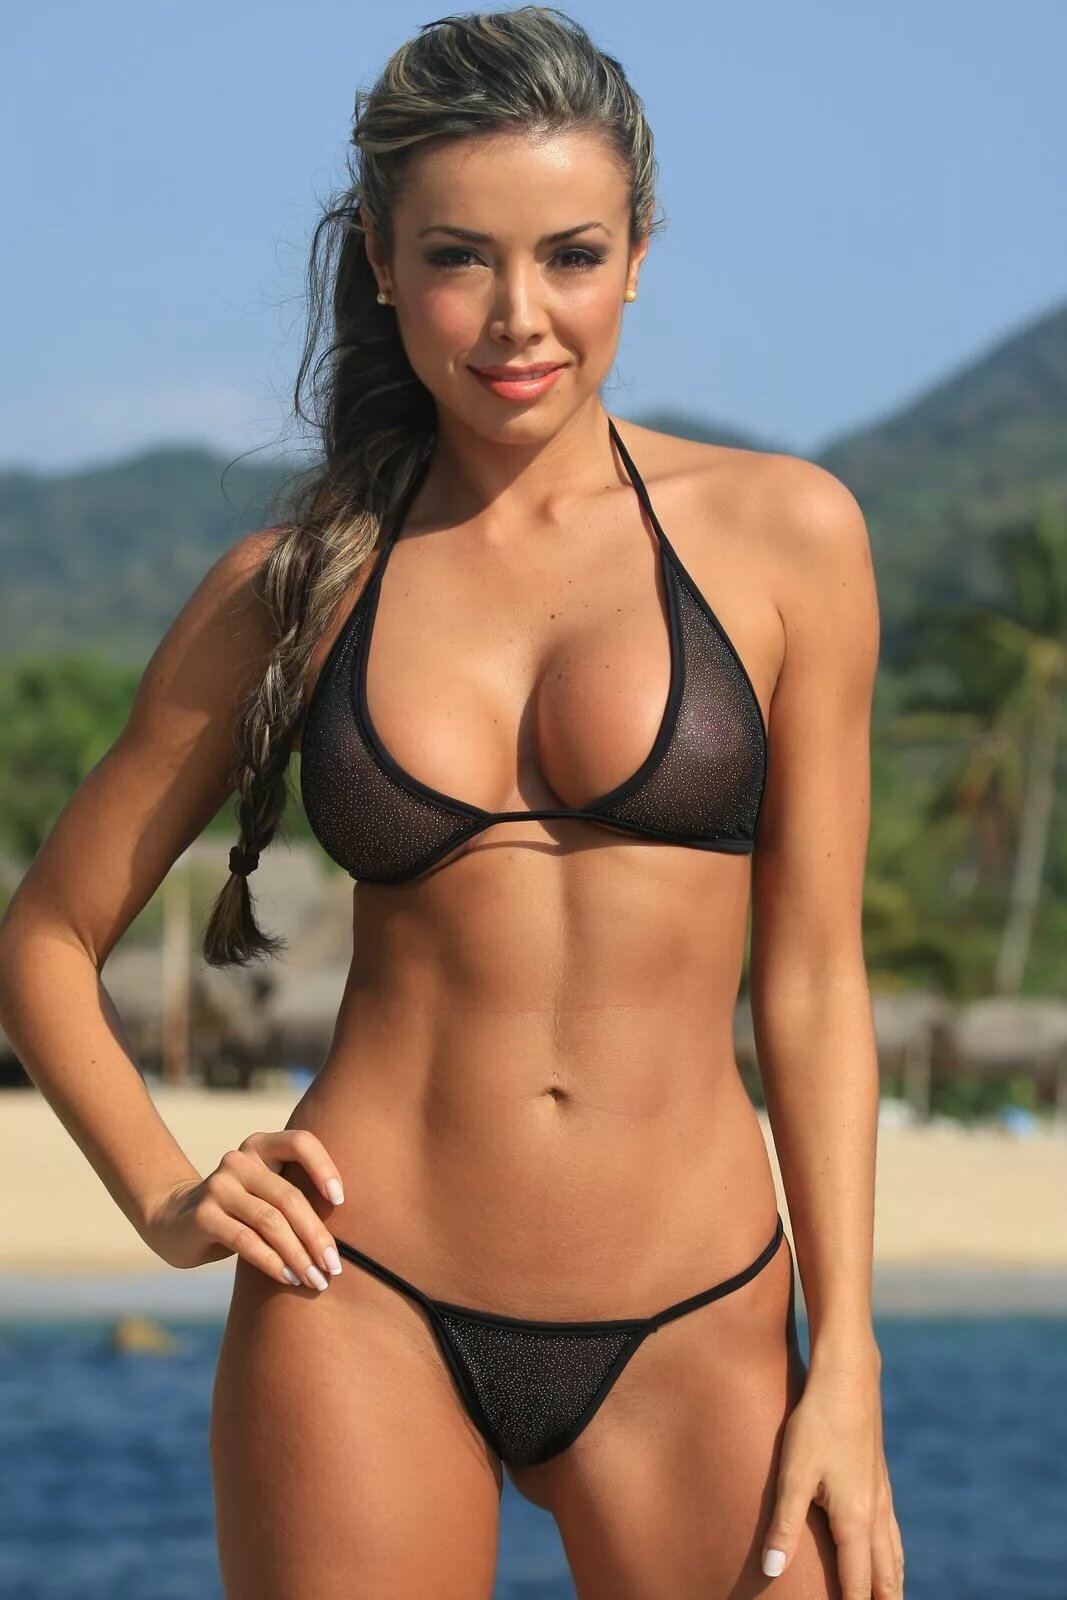 Hot string bikini models